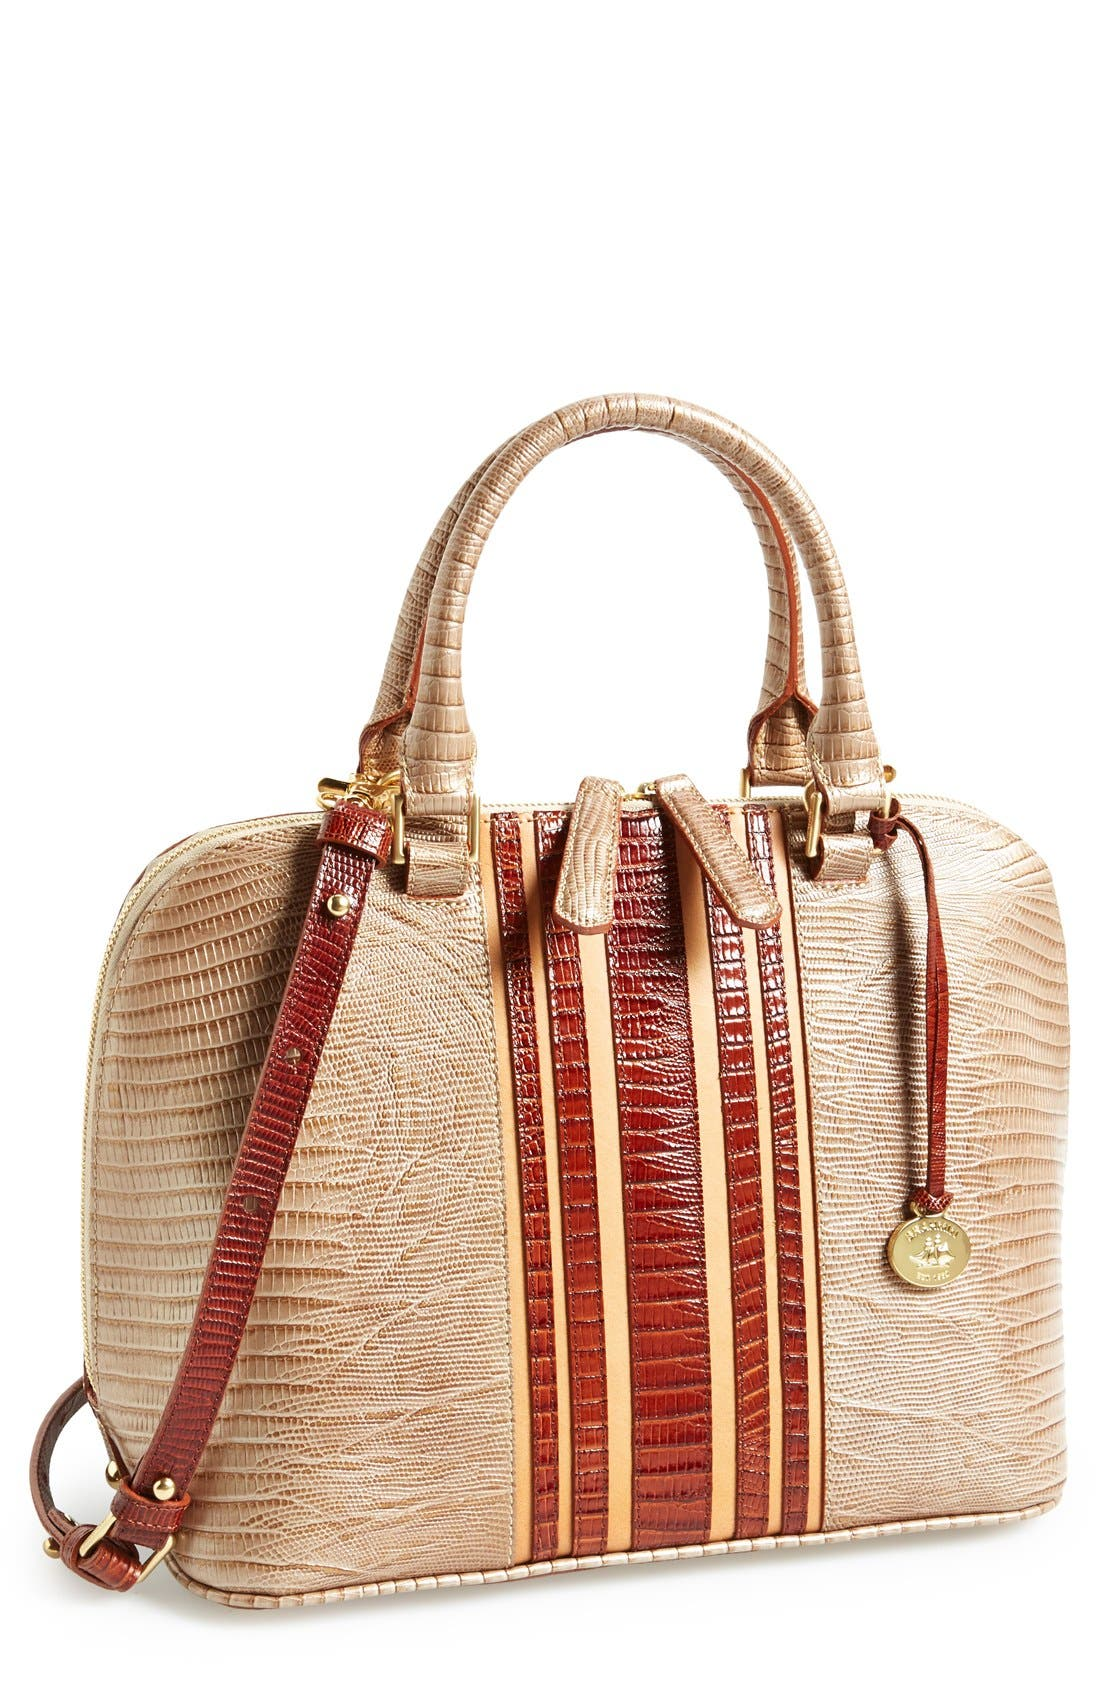 Alternate Image 1 Selected - Brahmin 'Vineyard - Vivian' Dome Satchel